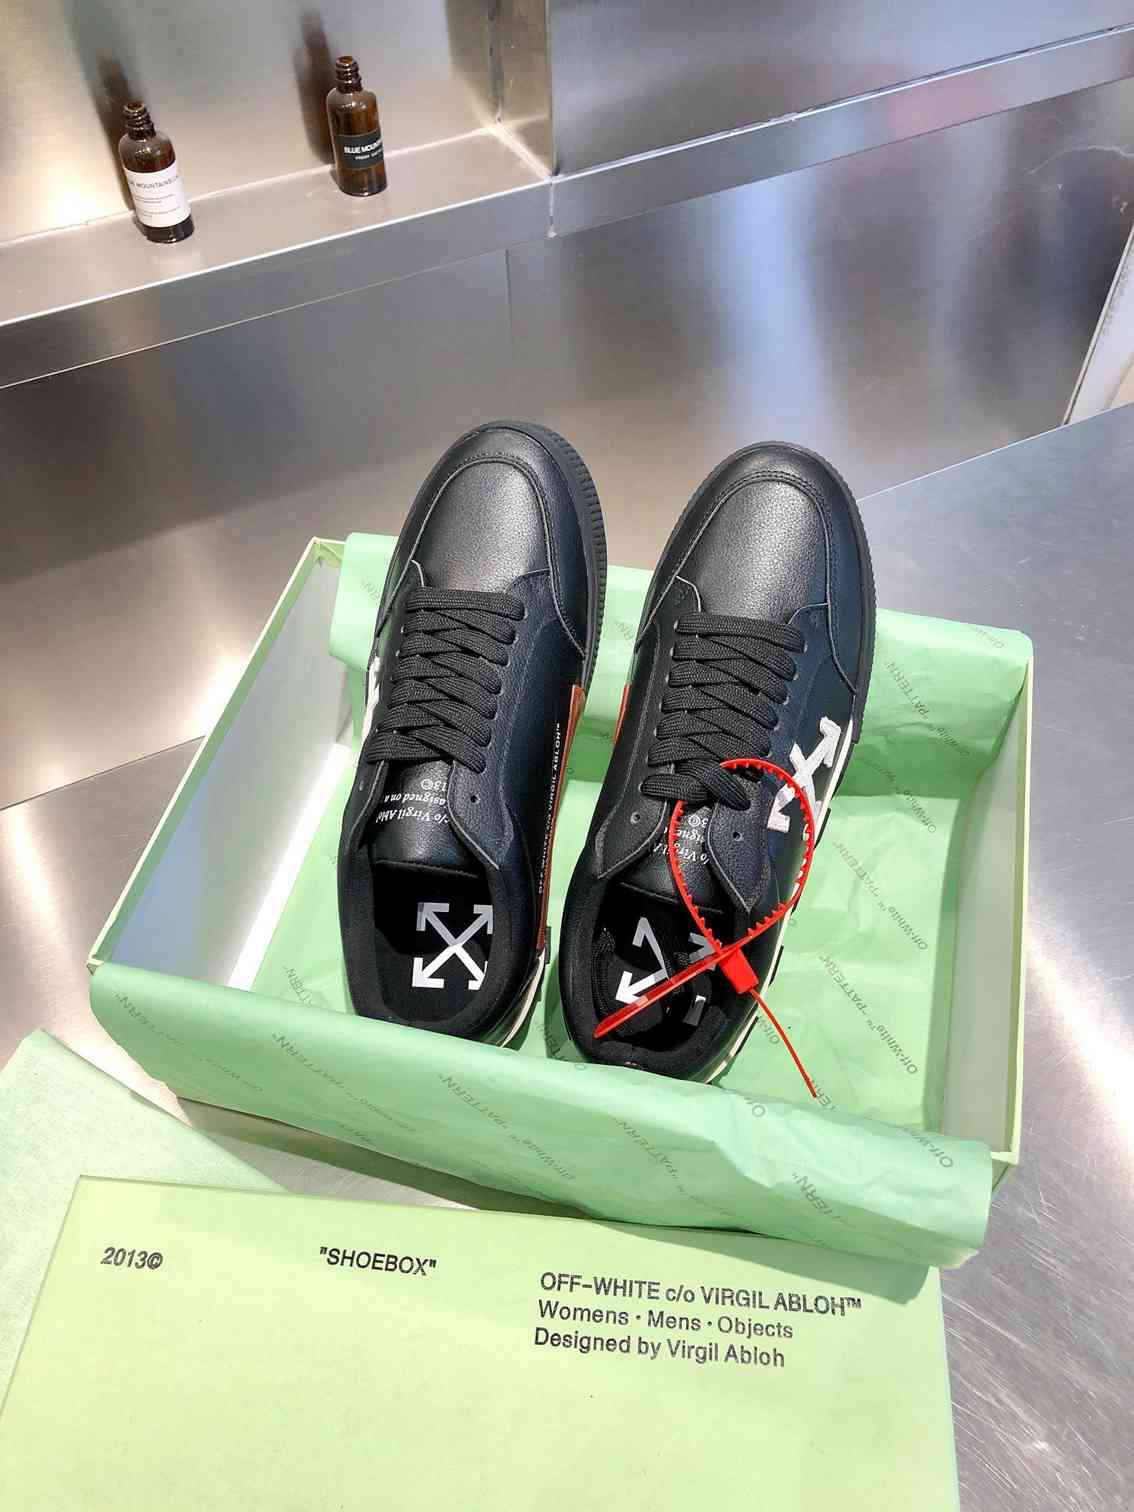 ow sneakers in box